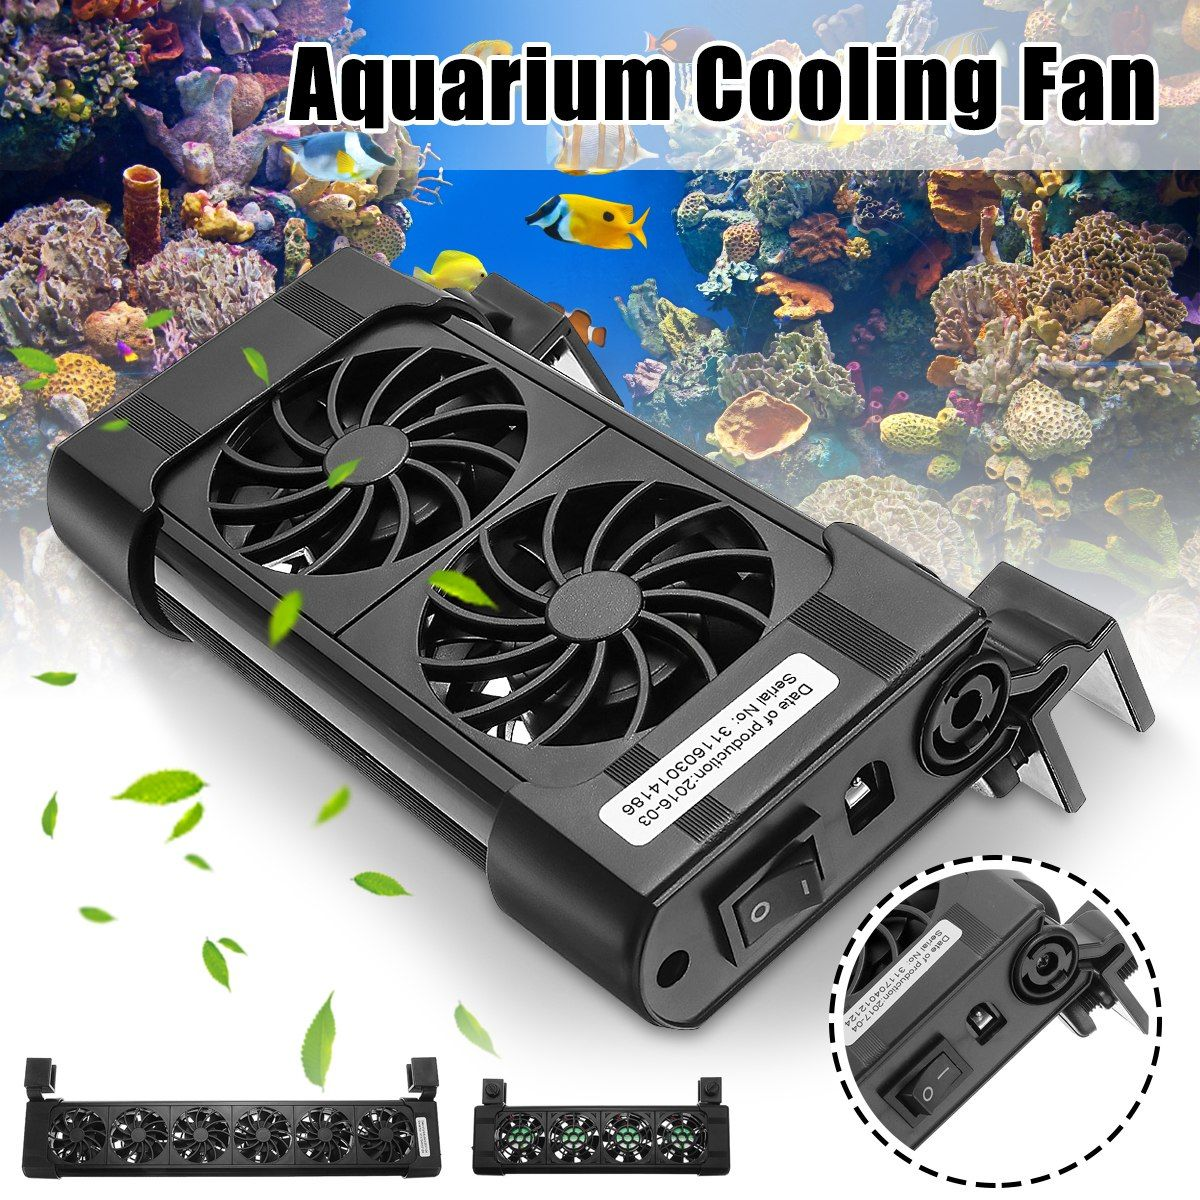 2 3 4 5 6 Heads Fan Black Aquarium Fish Tank Cooling Fans Cold